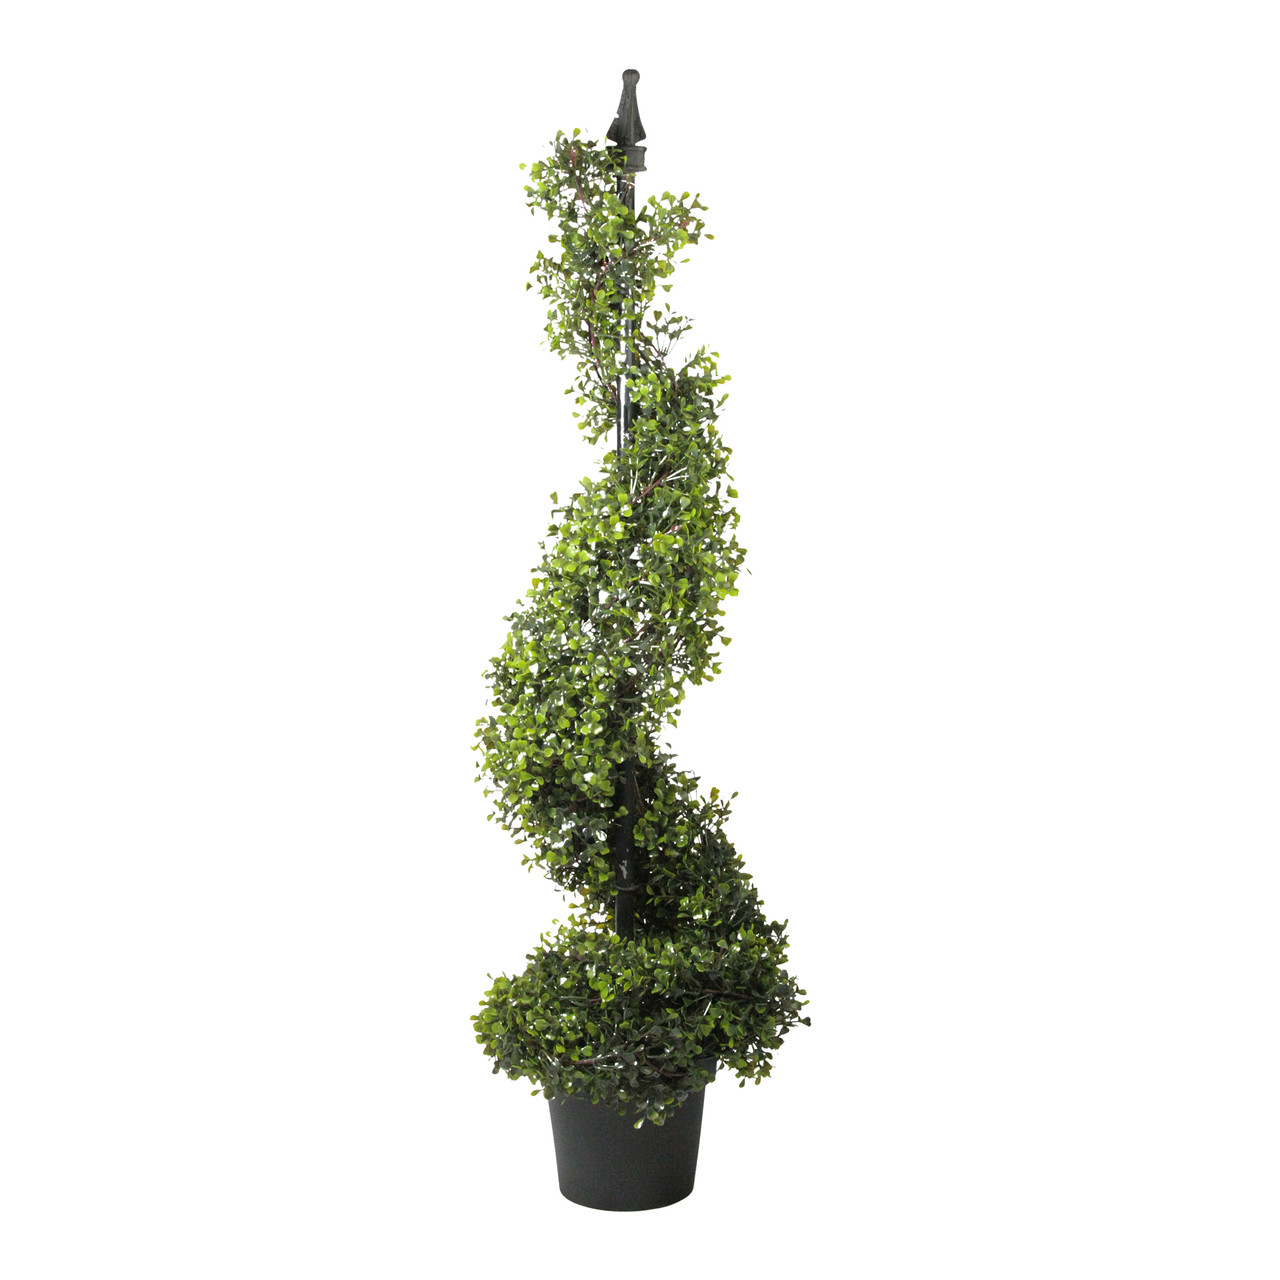 3 75 Two Tone Boxwood Spiral Potted Artificial Topiary Unlit Christmas Central